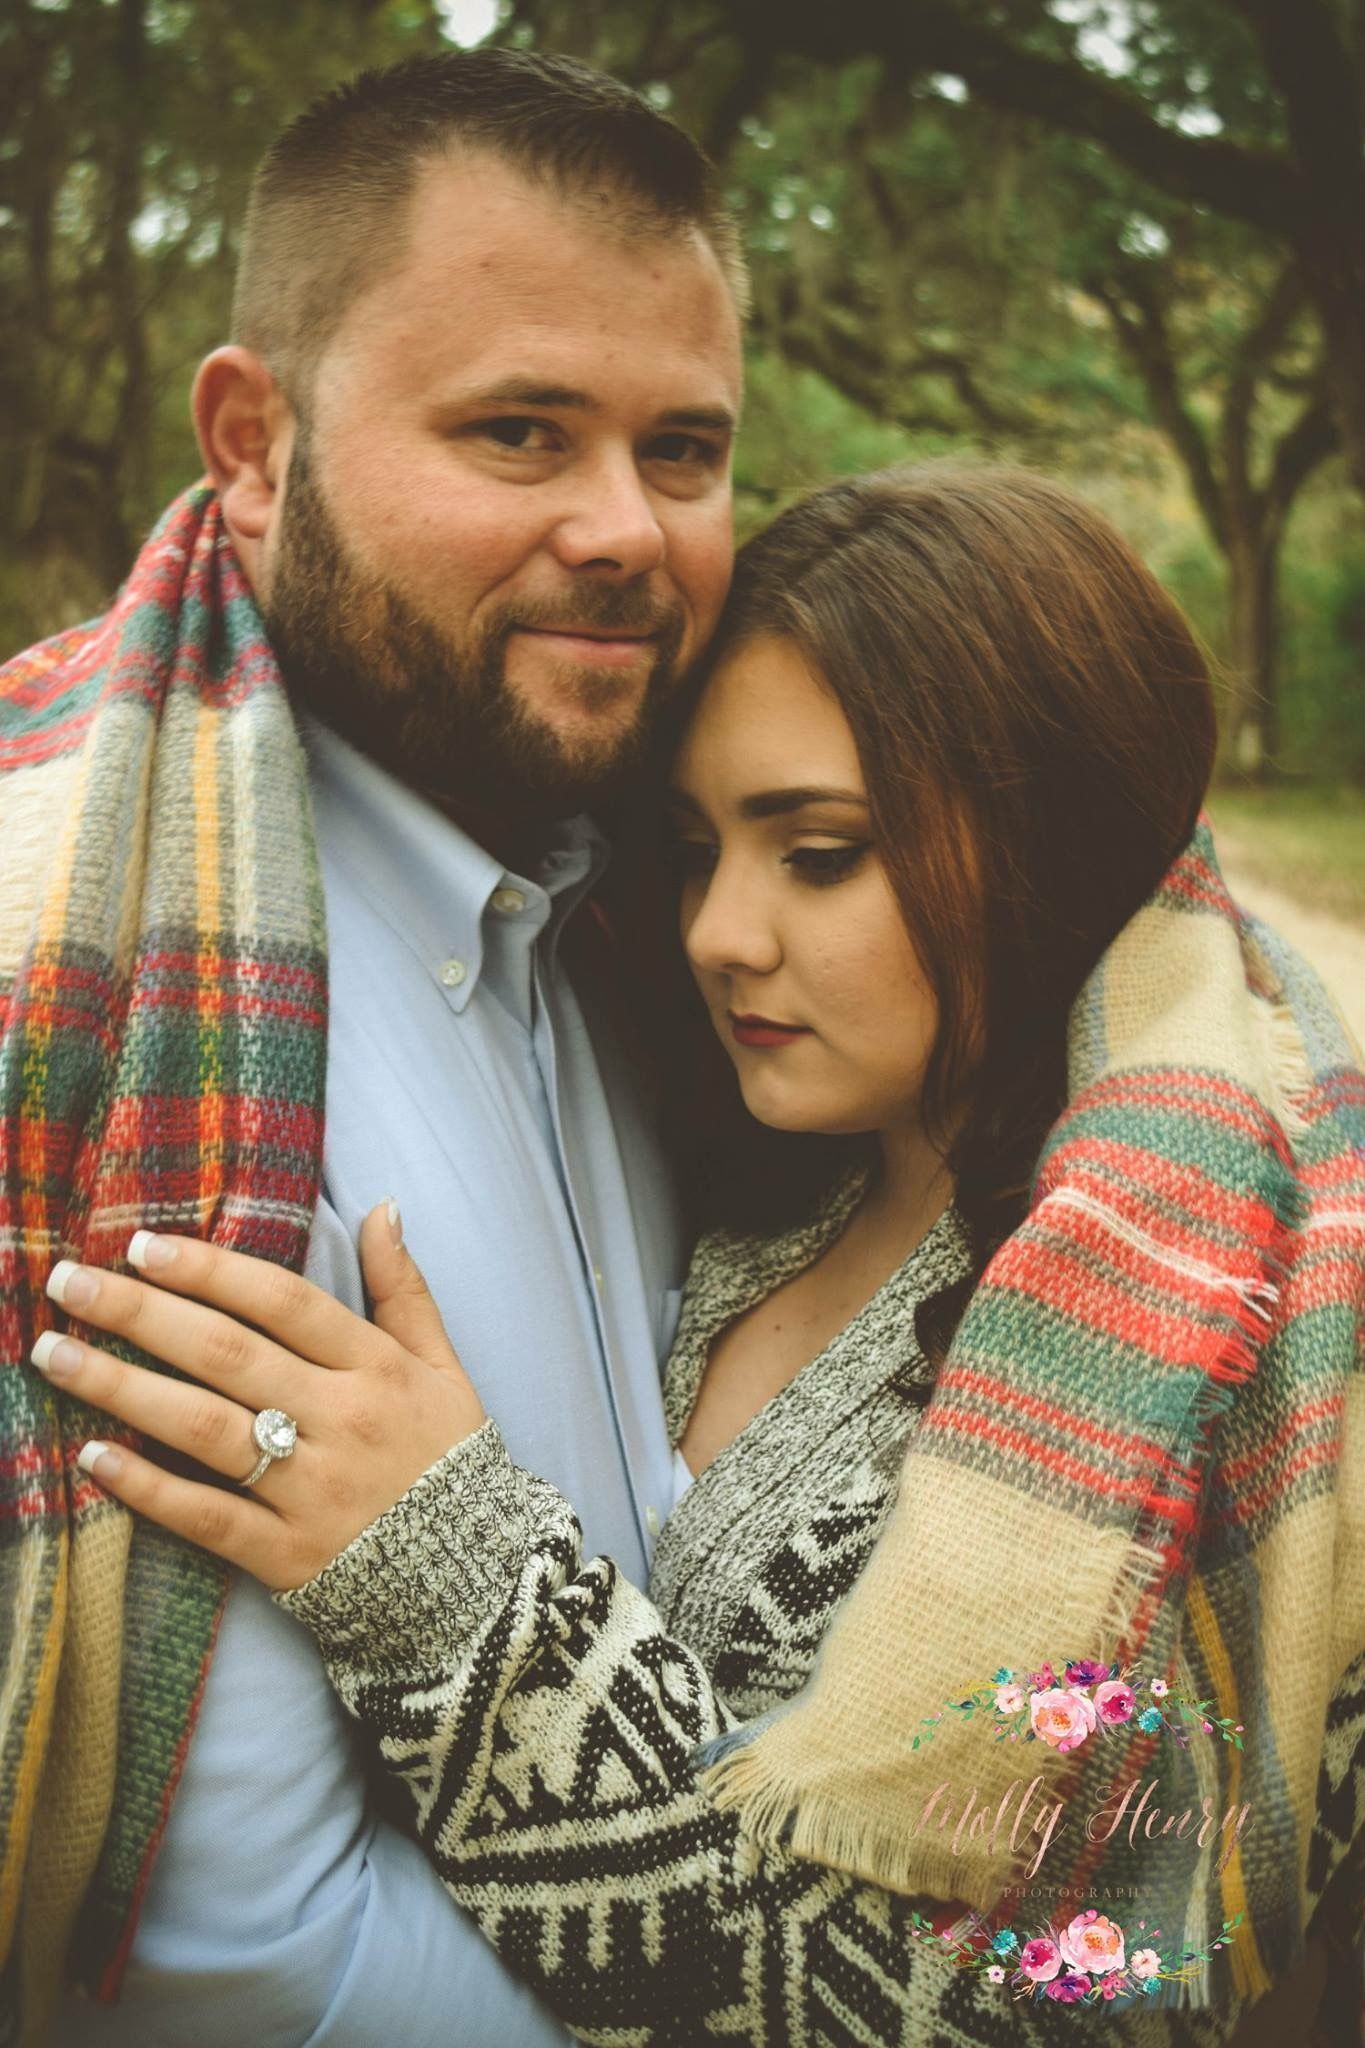 Pin by Molly Henry on Molly Henry Photography Couple